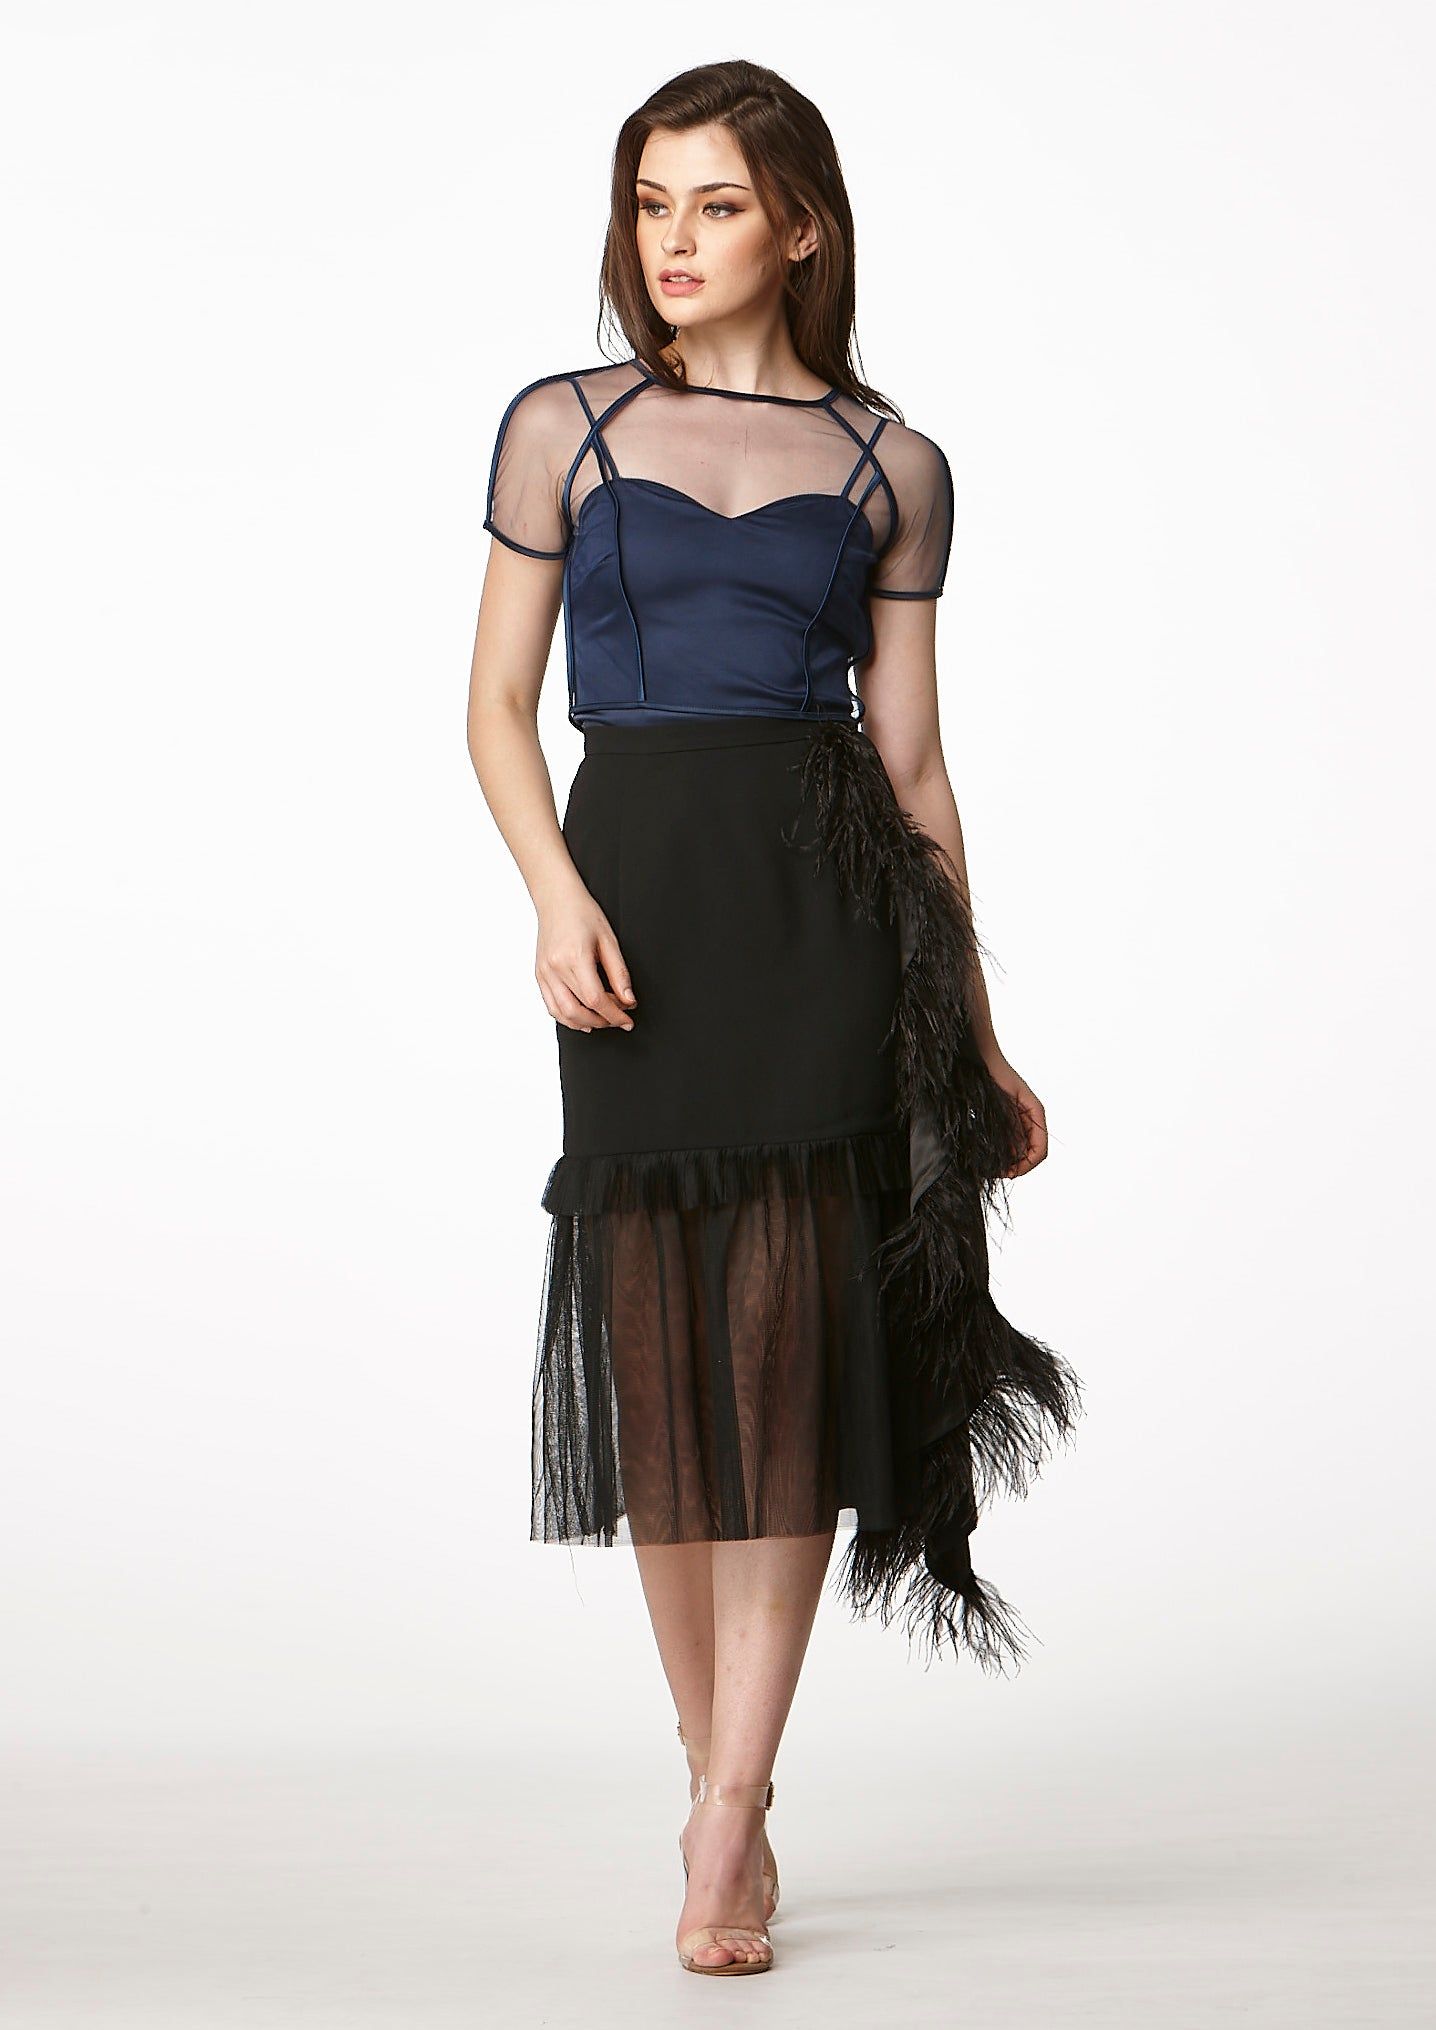 MOS Frills Midi Feather Skirt (Black) - Moxie